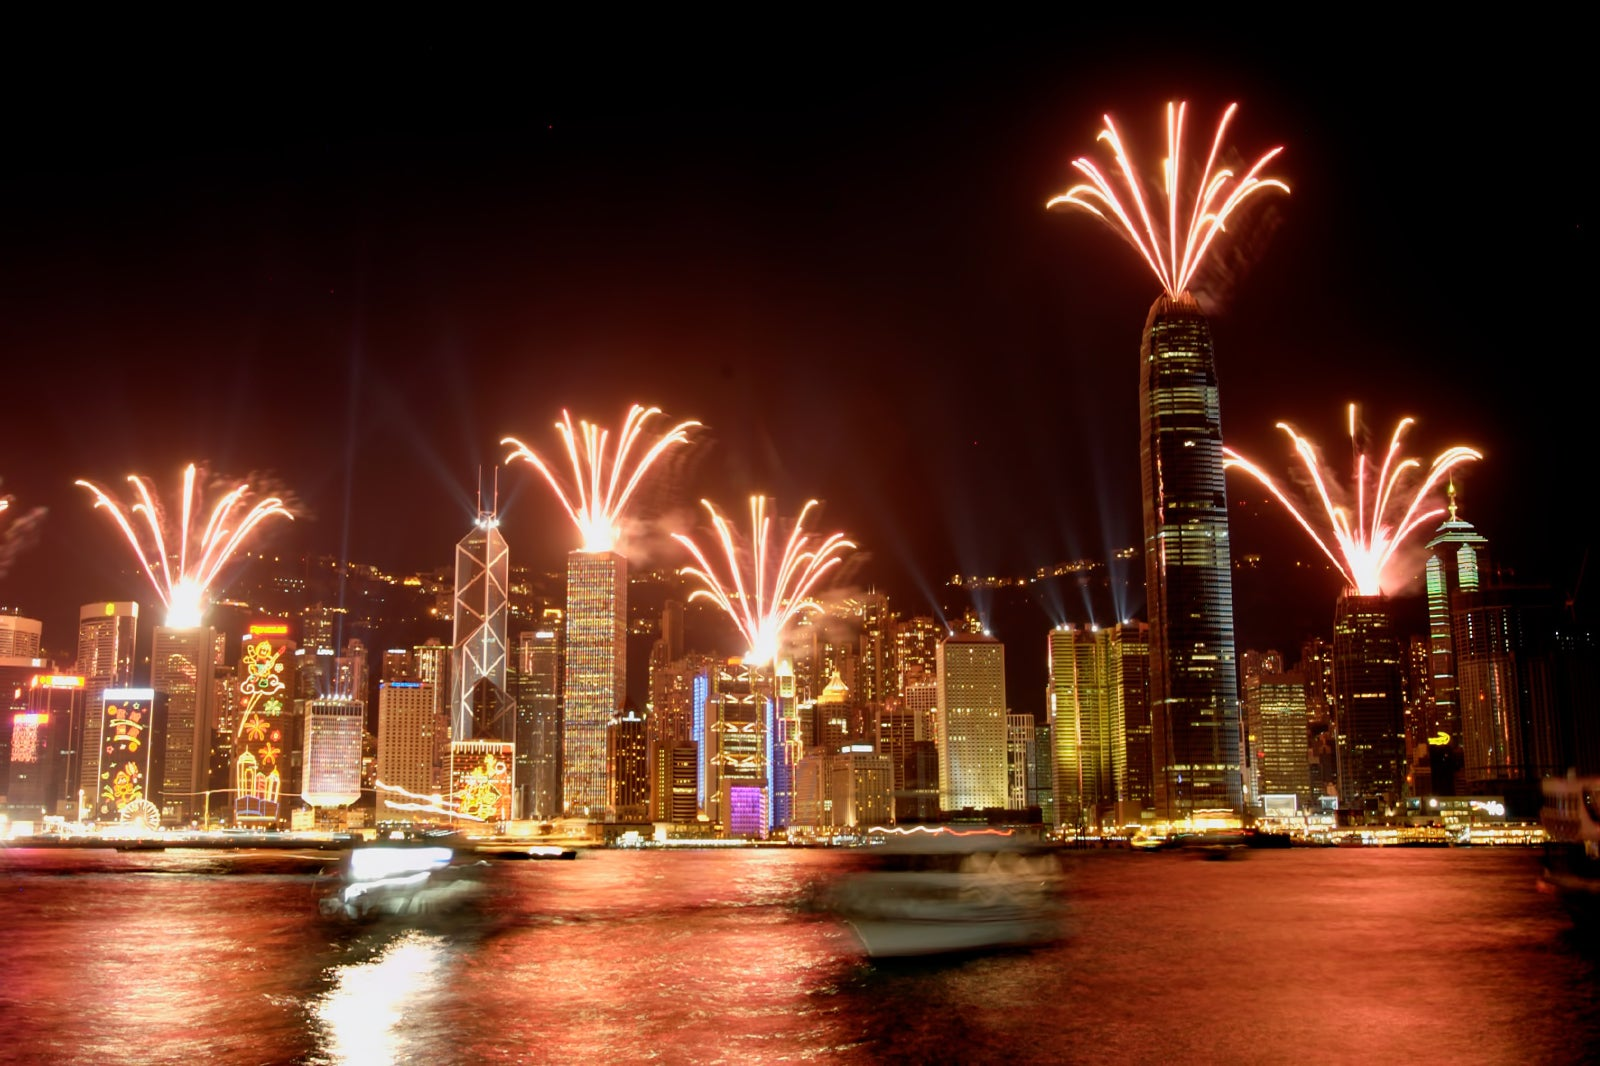 Symphony of Lights Hong Kong - Light and Sound Show at Victoria Harbour